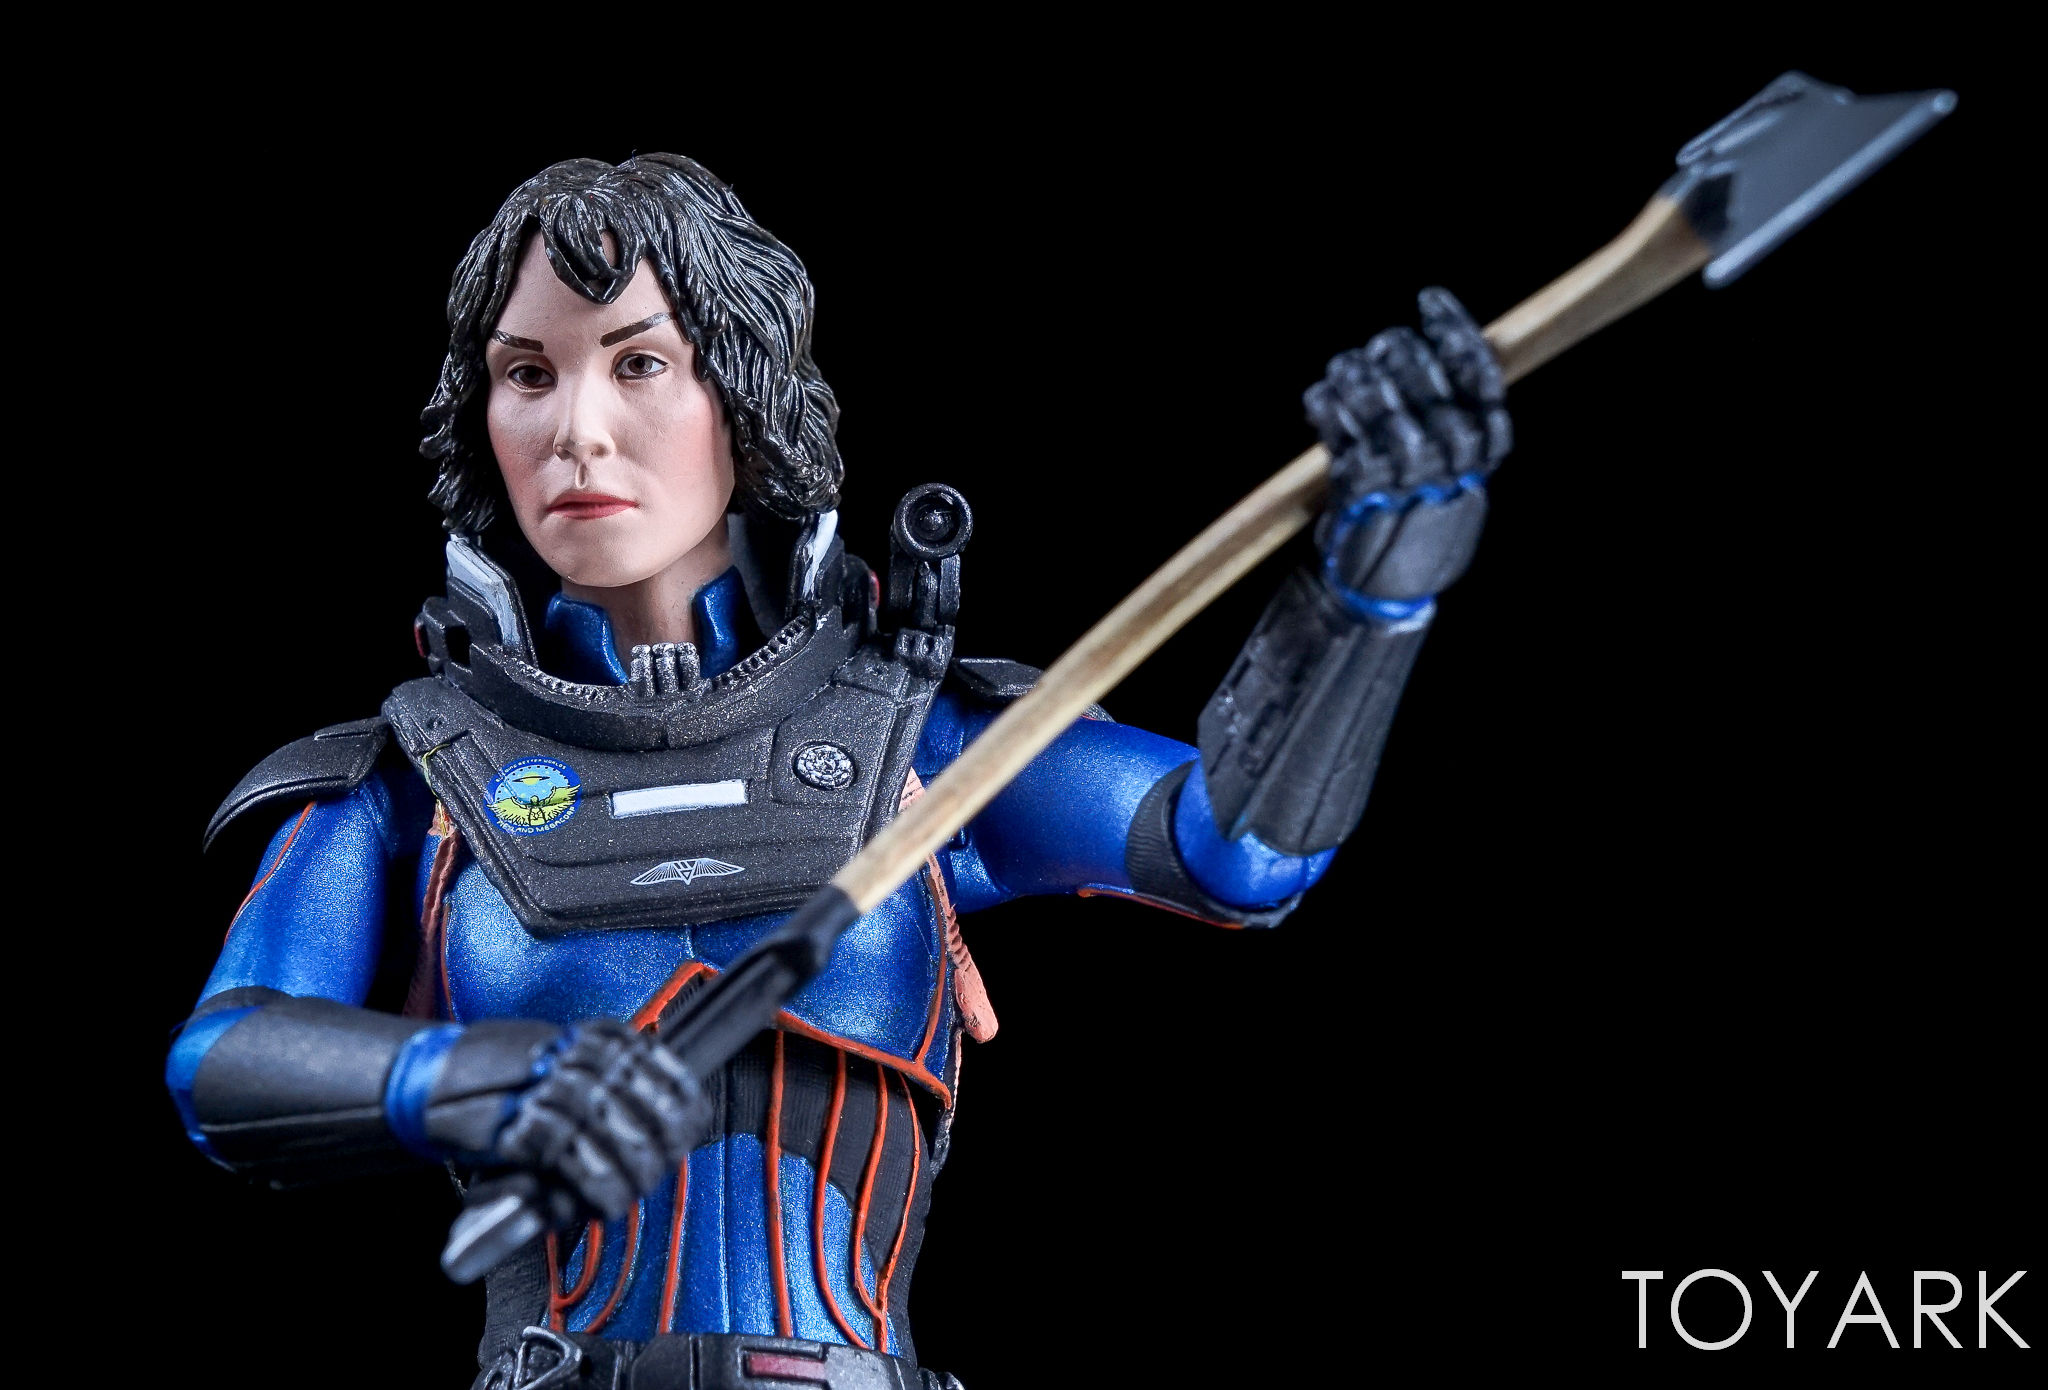 http://news.toyark.com/wp-content/uploads/sites/4/2017/06/NECA-Prometheus-Lost-Wave-034.jpg